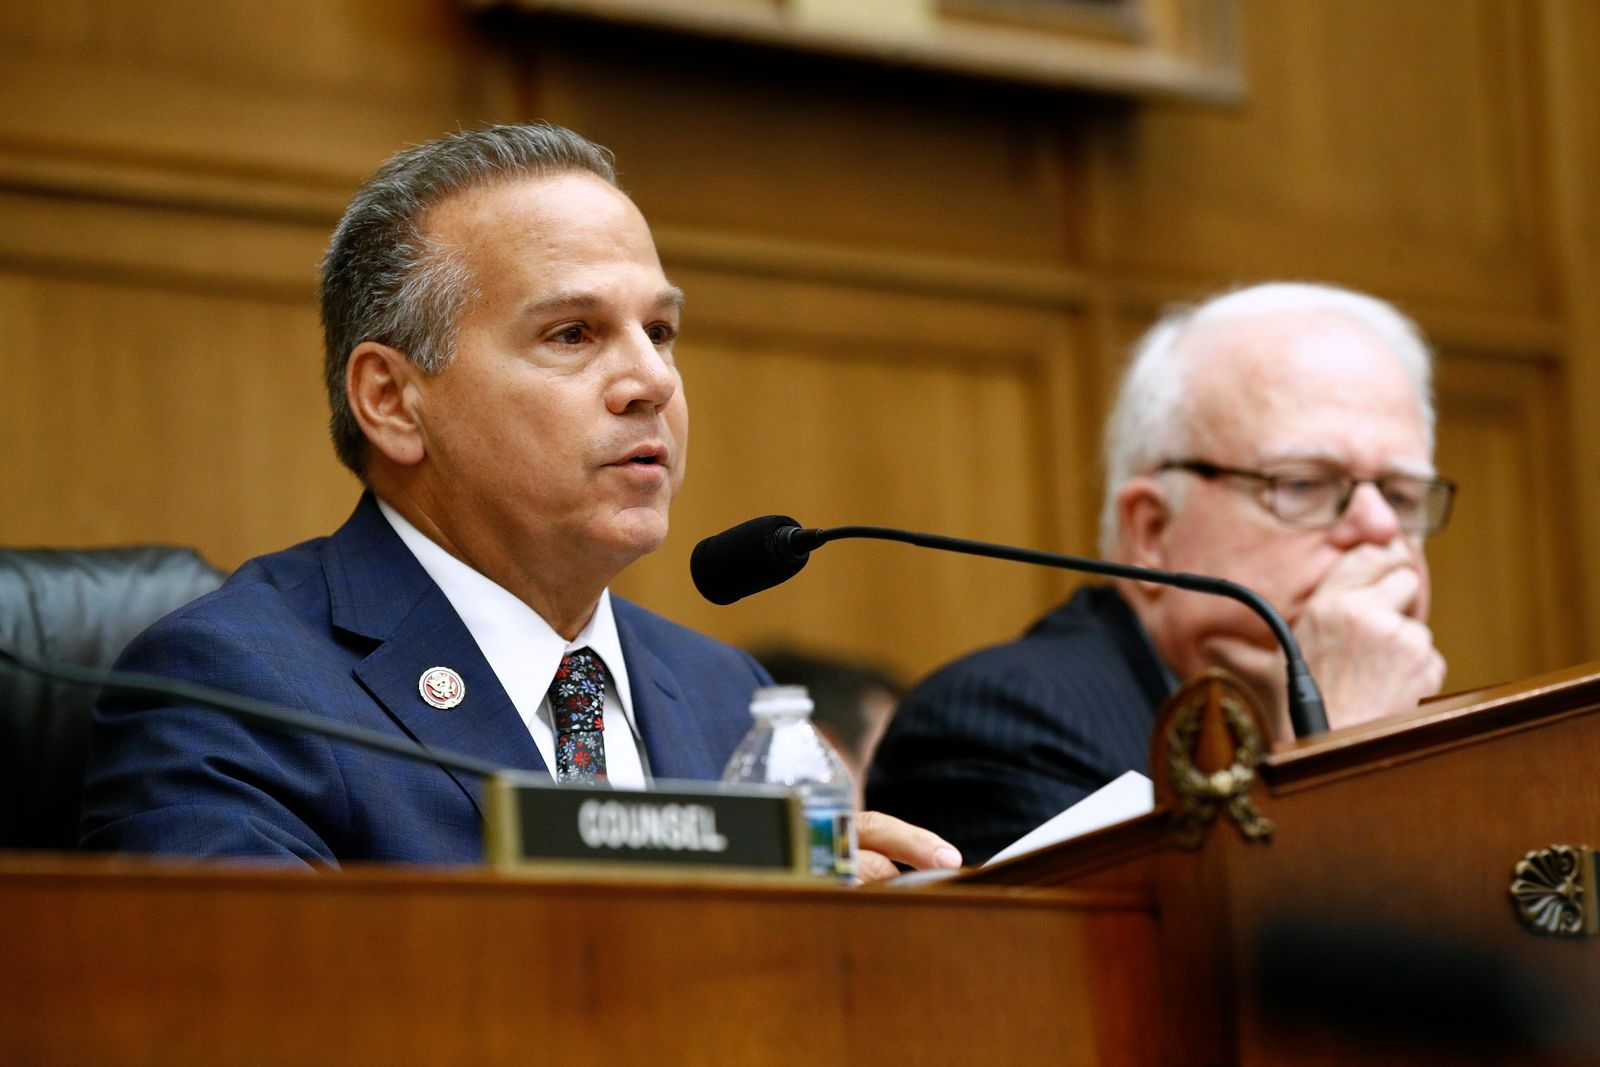 Rep. David Cicilline, D-R.I., left, chair of the House Judiciary antitrust subcommittee, speaks alongside ranking member, Rep. Jim Sensenbrenner, R-Wisc., during a House Judiciary subcommittee hearing with representatives from major tech companies, Tuesday, July 16, 2019, on Capitol Hill in Washington. (AP Photo/Patrick Semansky)